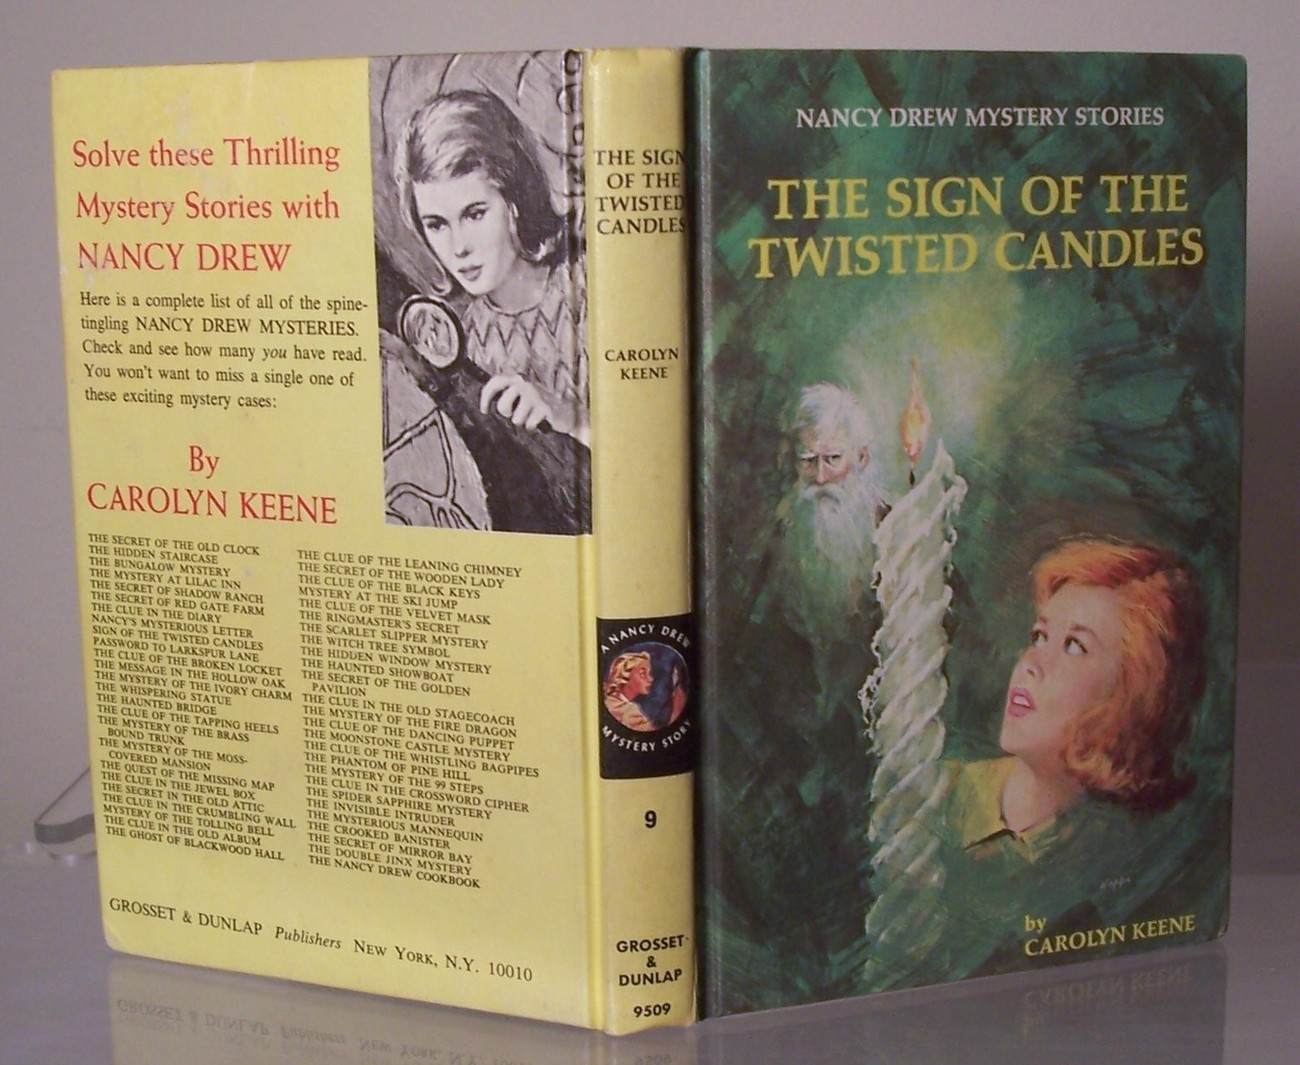 Nancy Drew #9 The Sign of the Twisted Candles Vintage PC